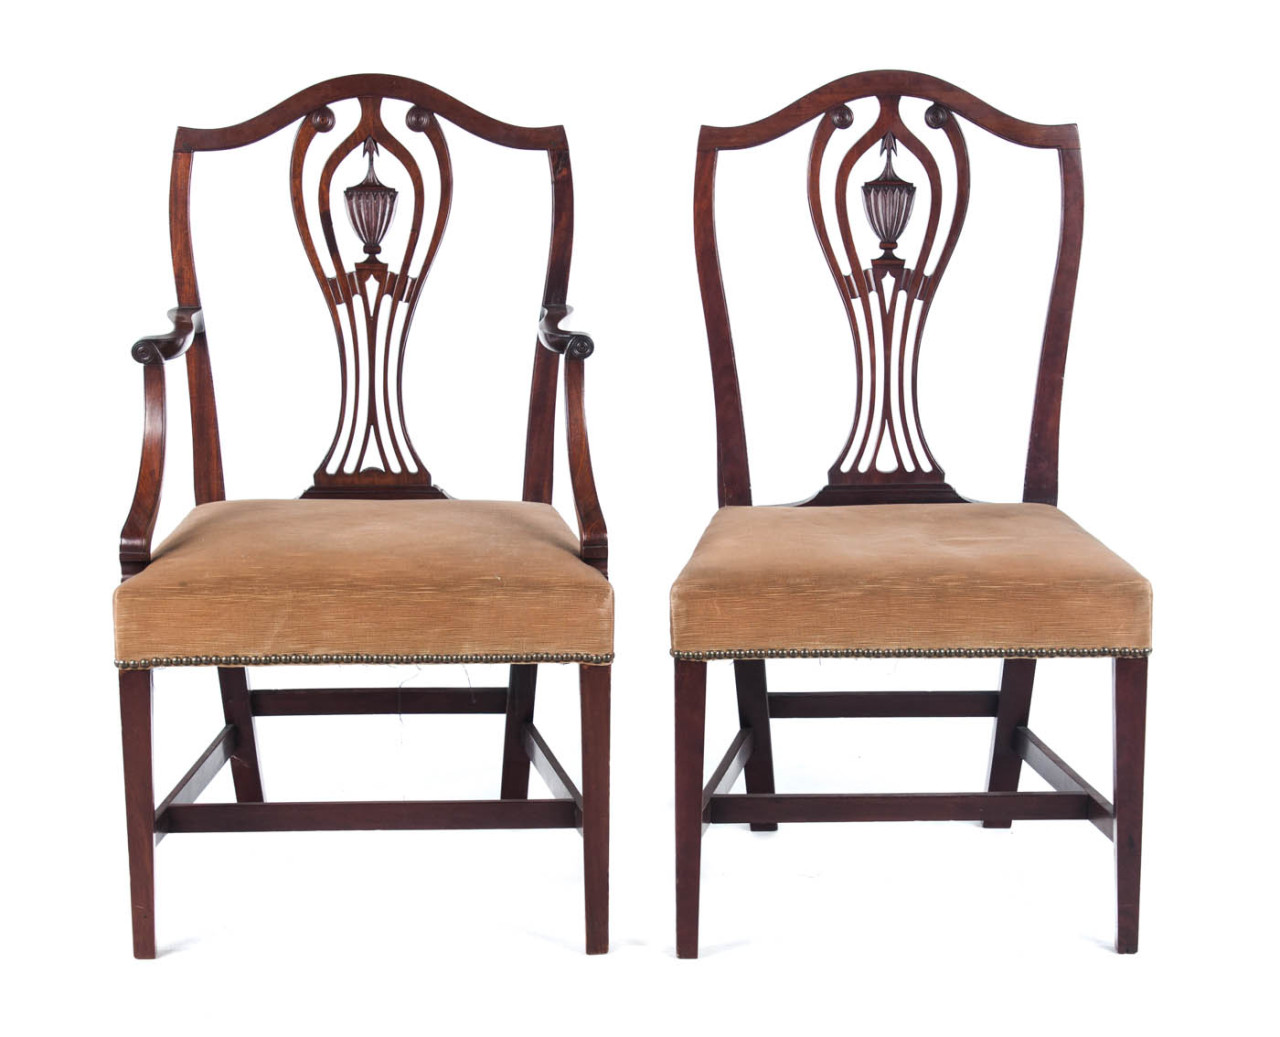 federal dining chairs chair cover rentals huntsville al matthew dandy photography  cherrywood